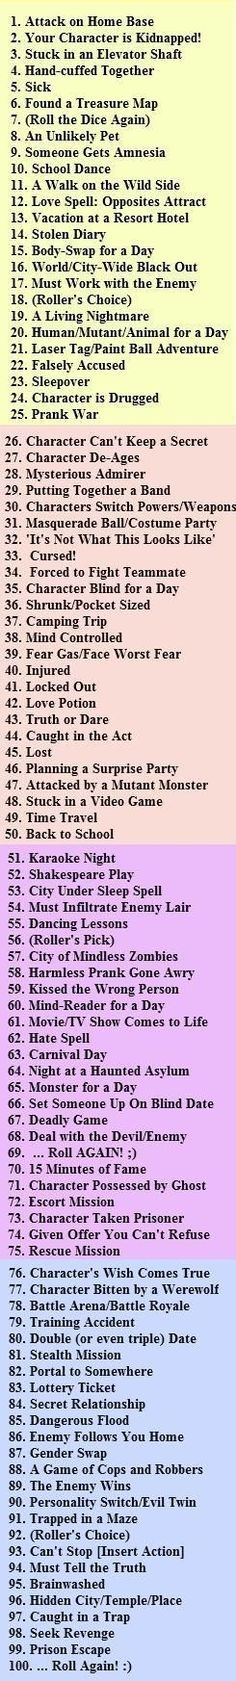 And now, pick a number between 1 and Instant writing prompt. :D - I actually started reading this as chapter titles XD now THAT would be one crazy story. Looks like a fun creative-writing exercise for the kiddos Writing Advice, Writing Resources, Teaching Writing, Writing Help, Writing Skills, Writing A Book, Writing Prompts, Writing Ideas, Teaching Tools